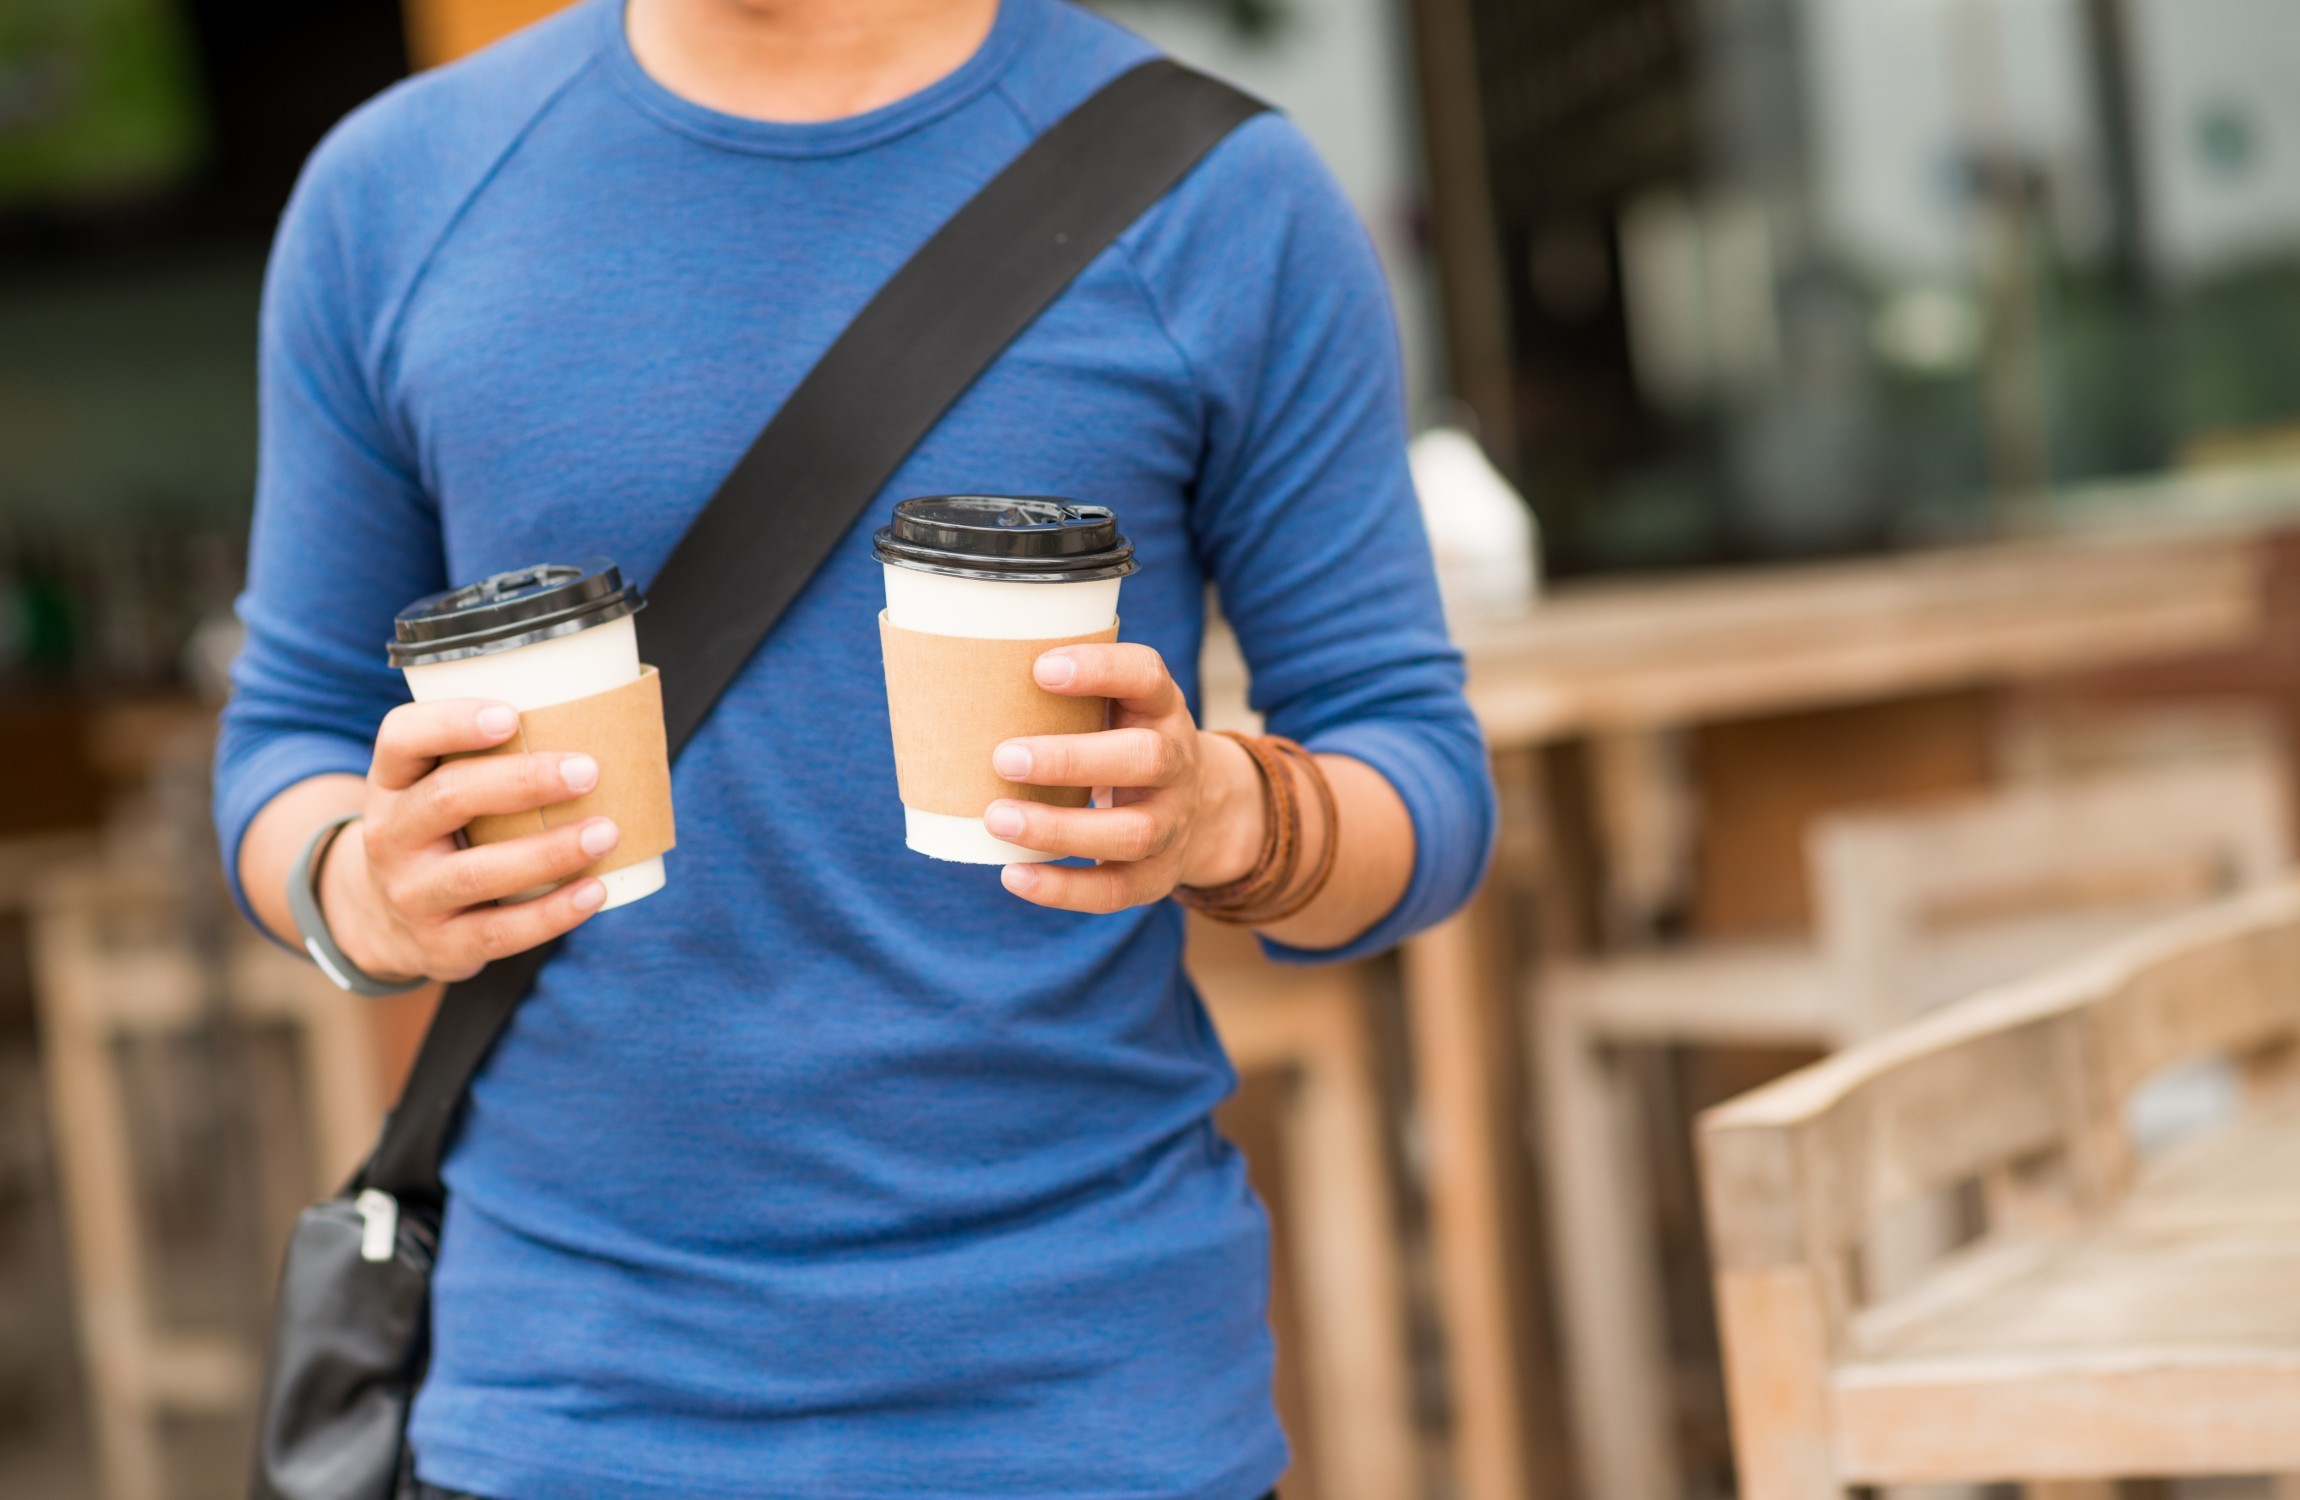 Ireland proposes levy on disposable cups